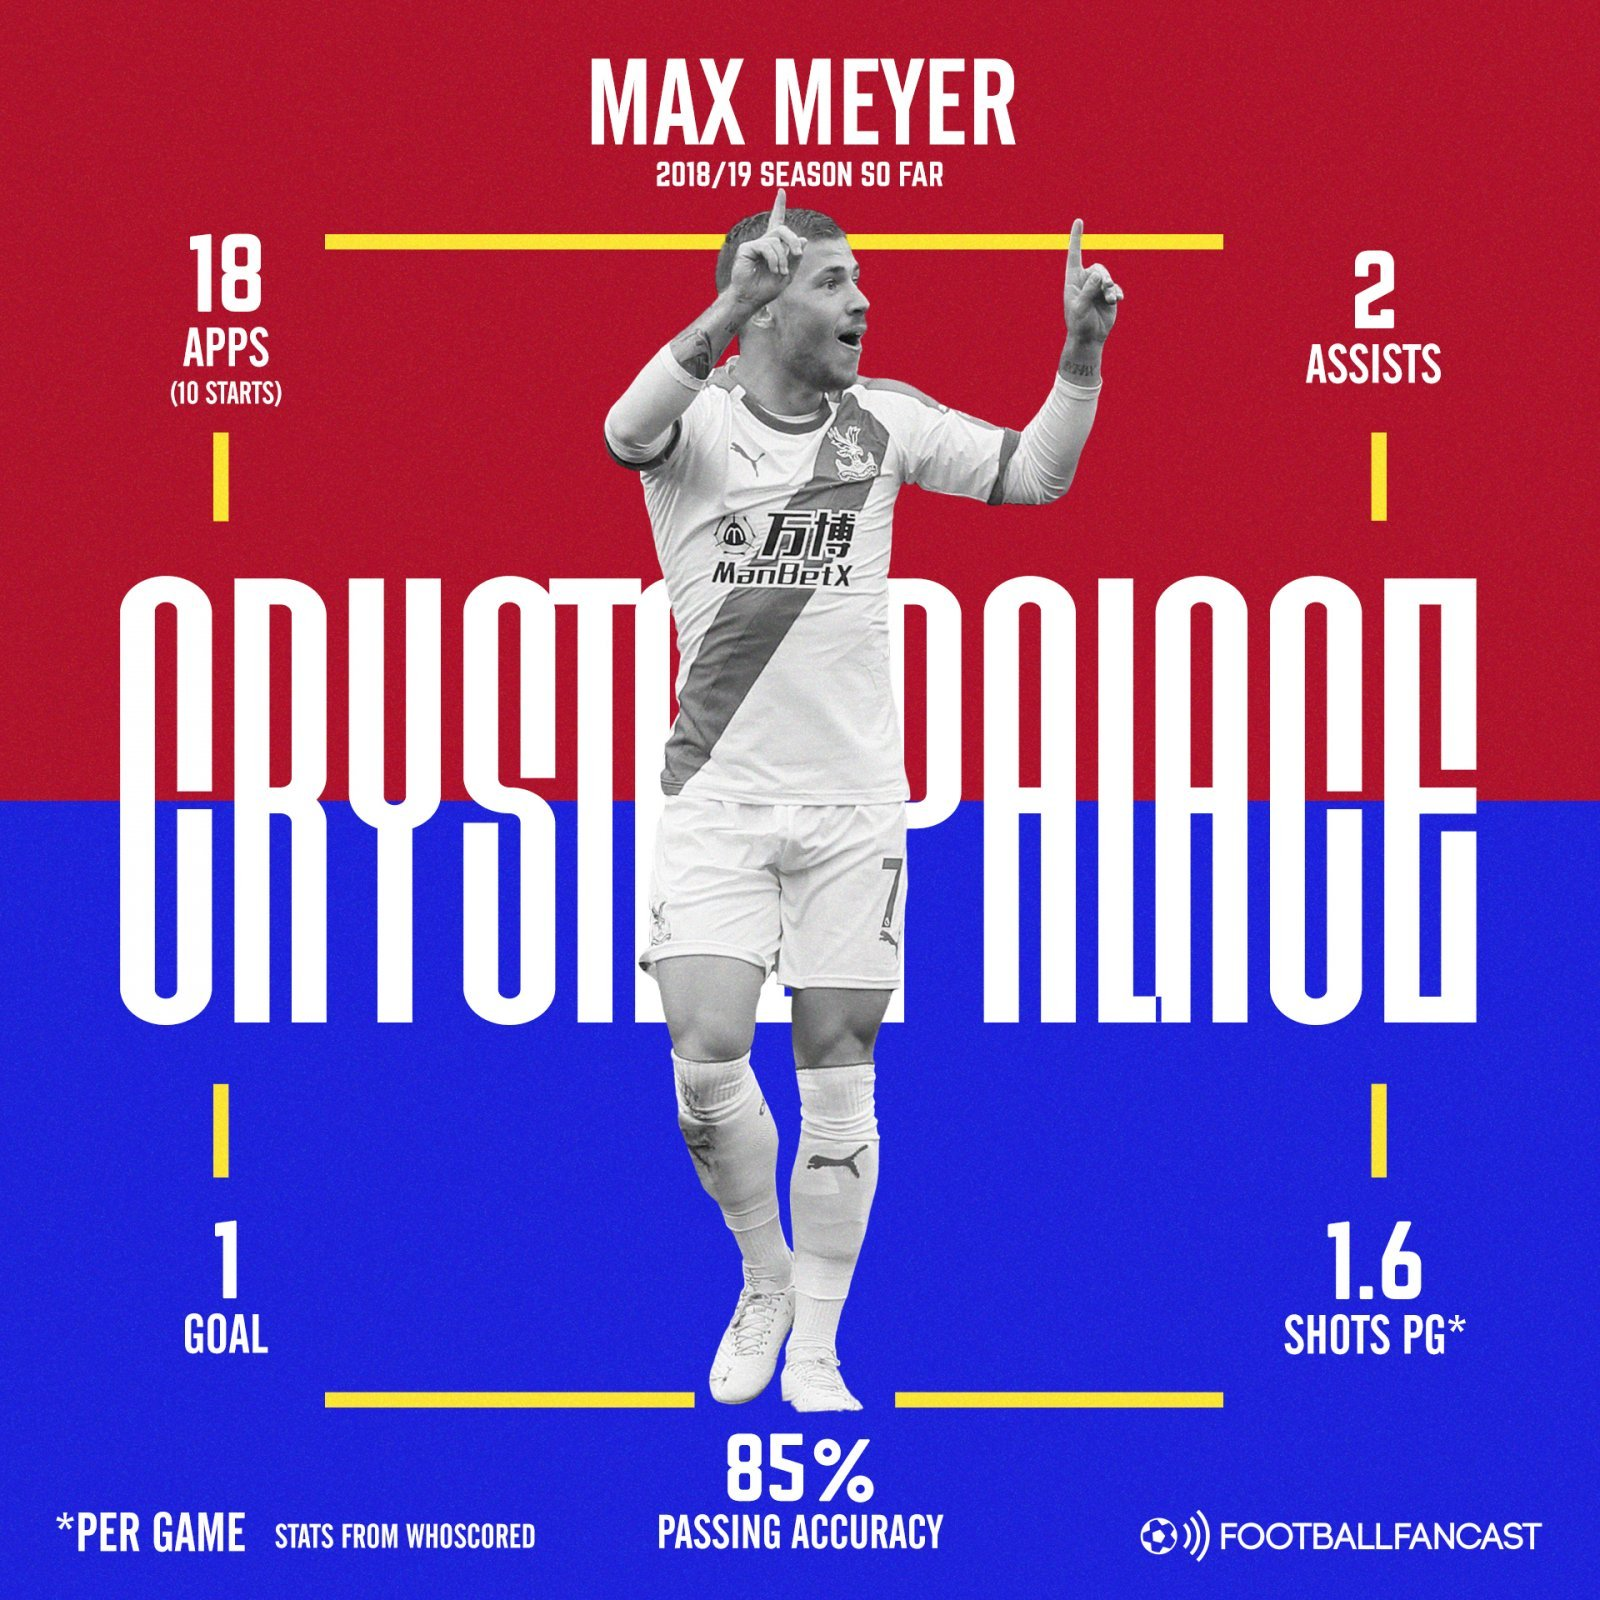 Max Meyer 2 1 - 2 Assists, 85% passing: 23-year-old will come good after slow start to Palace career - opinion